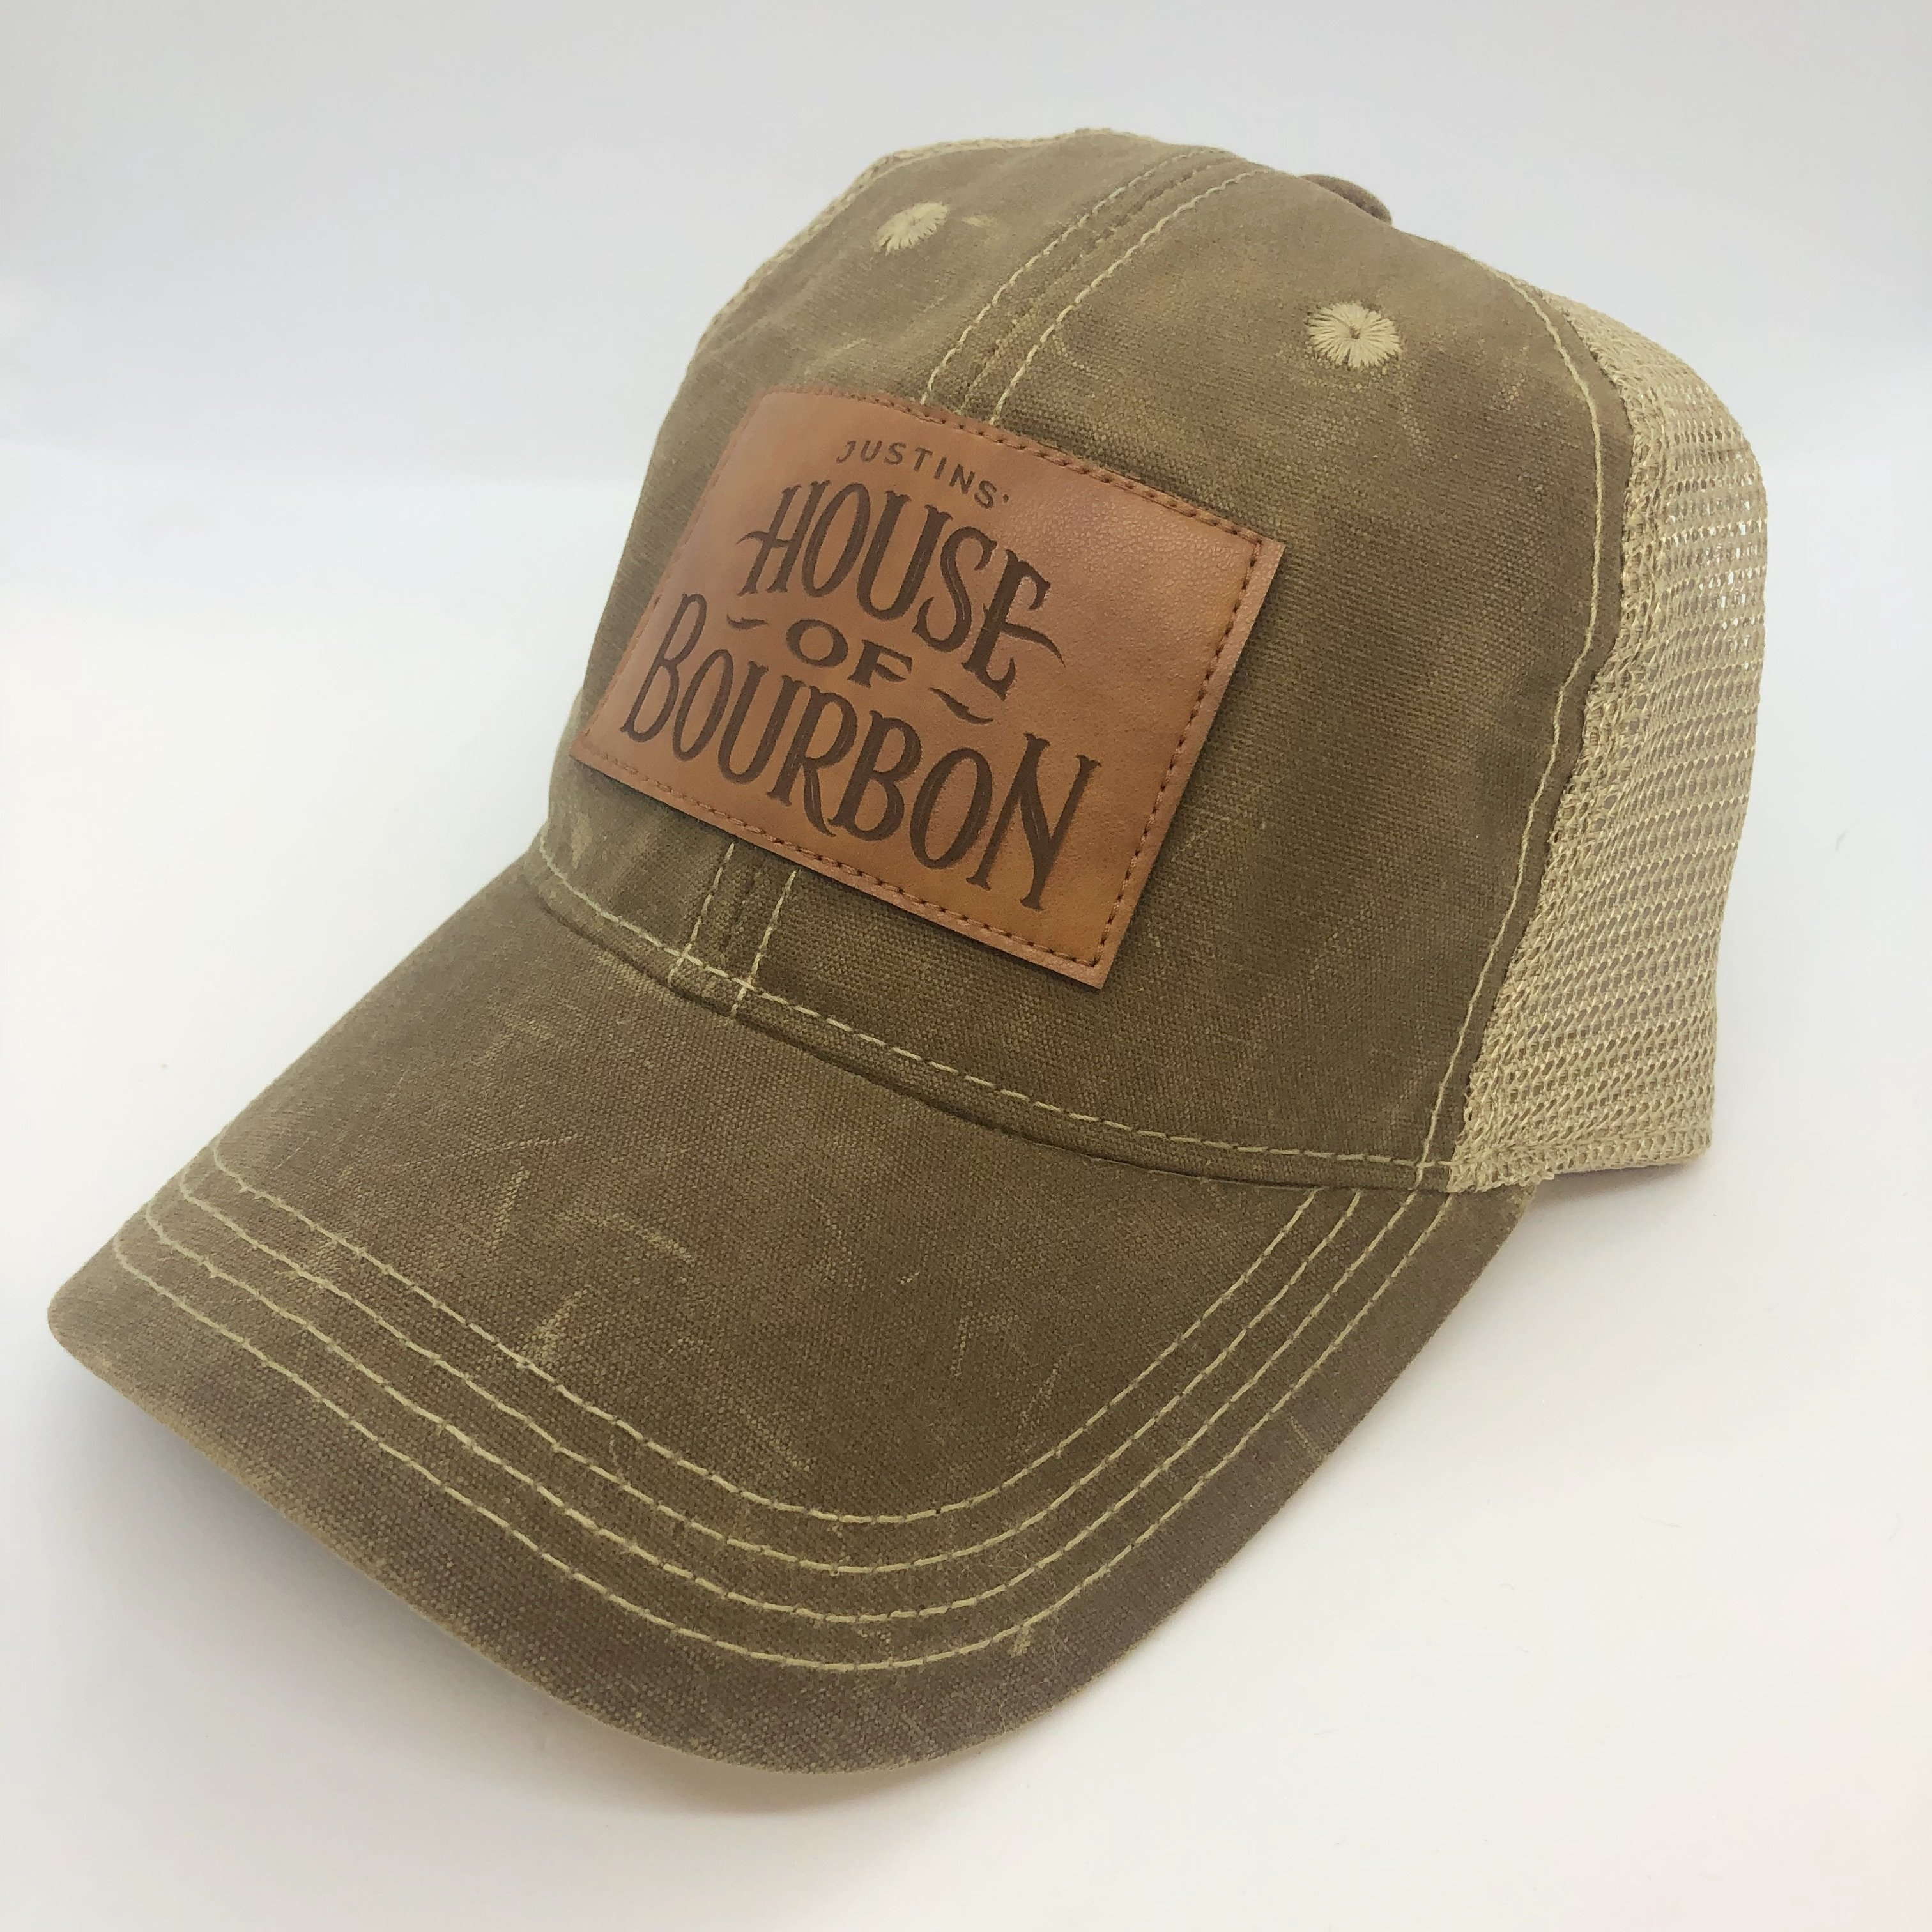 Justins' House of Bourbon Waxed Cotton Trucker Hat